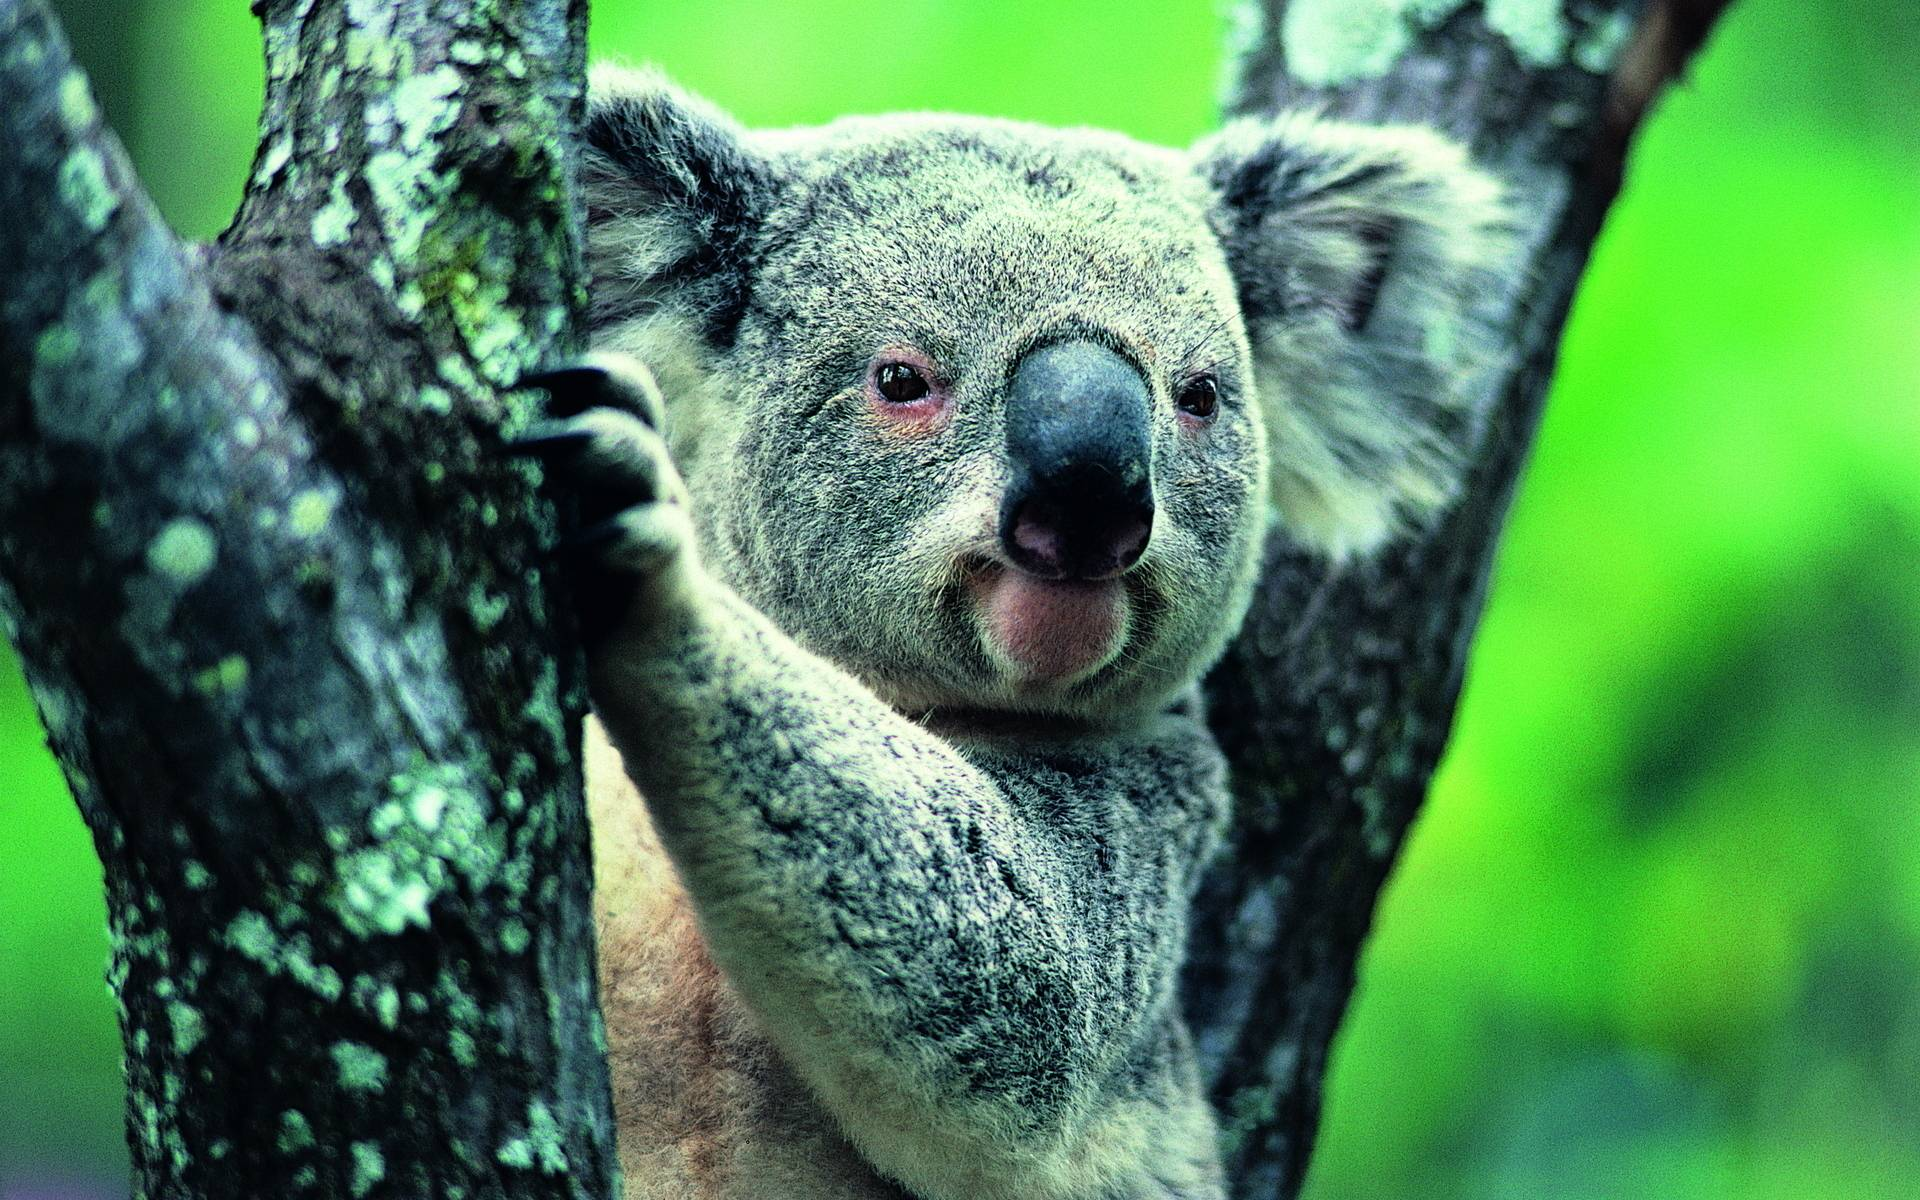 Koala Widescreen Wallpapers - HD Wallpapers Inn